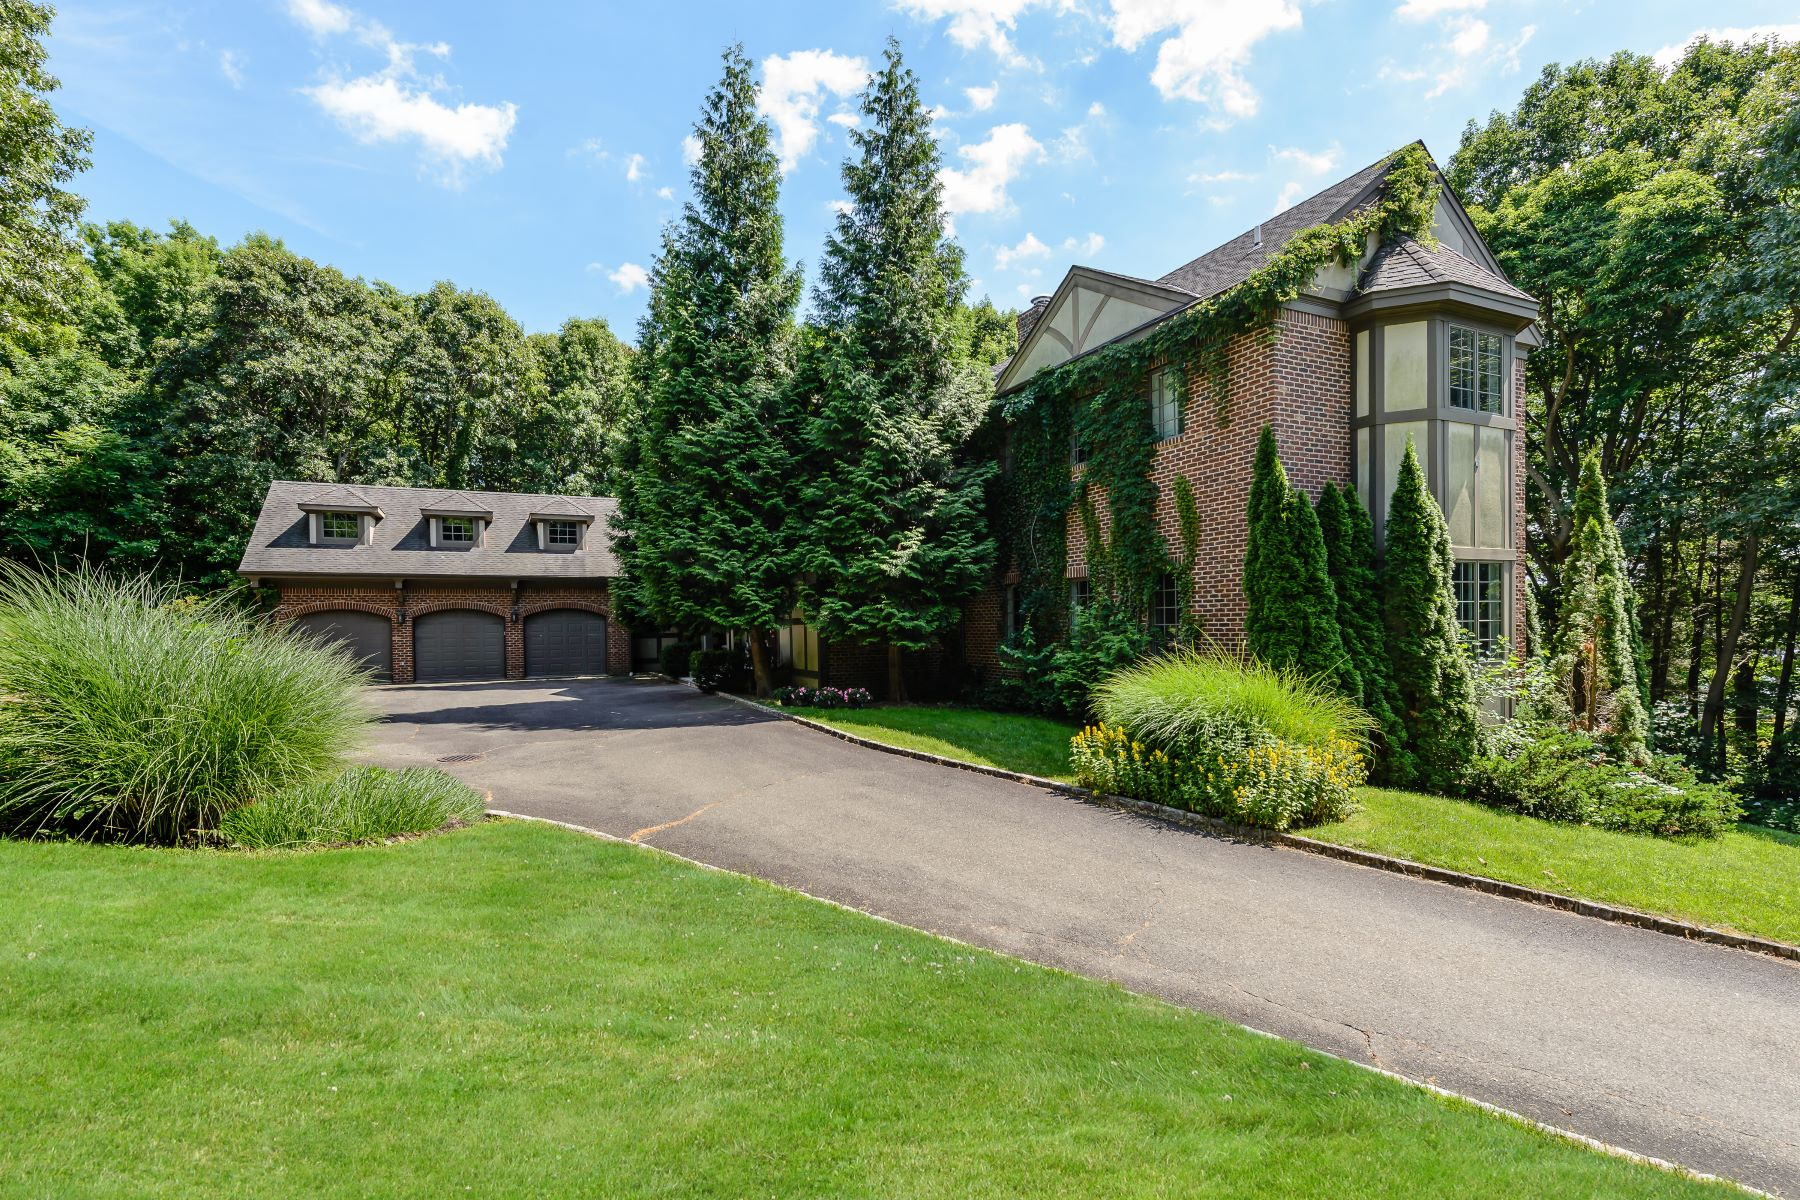 Single Family Homes for Sale at 117 Centre Island Rd Centre Island, New York 11771 United States